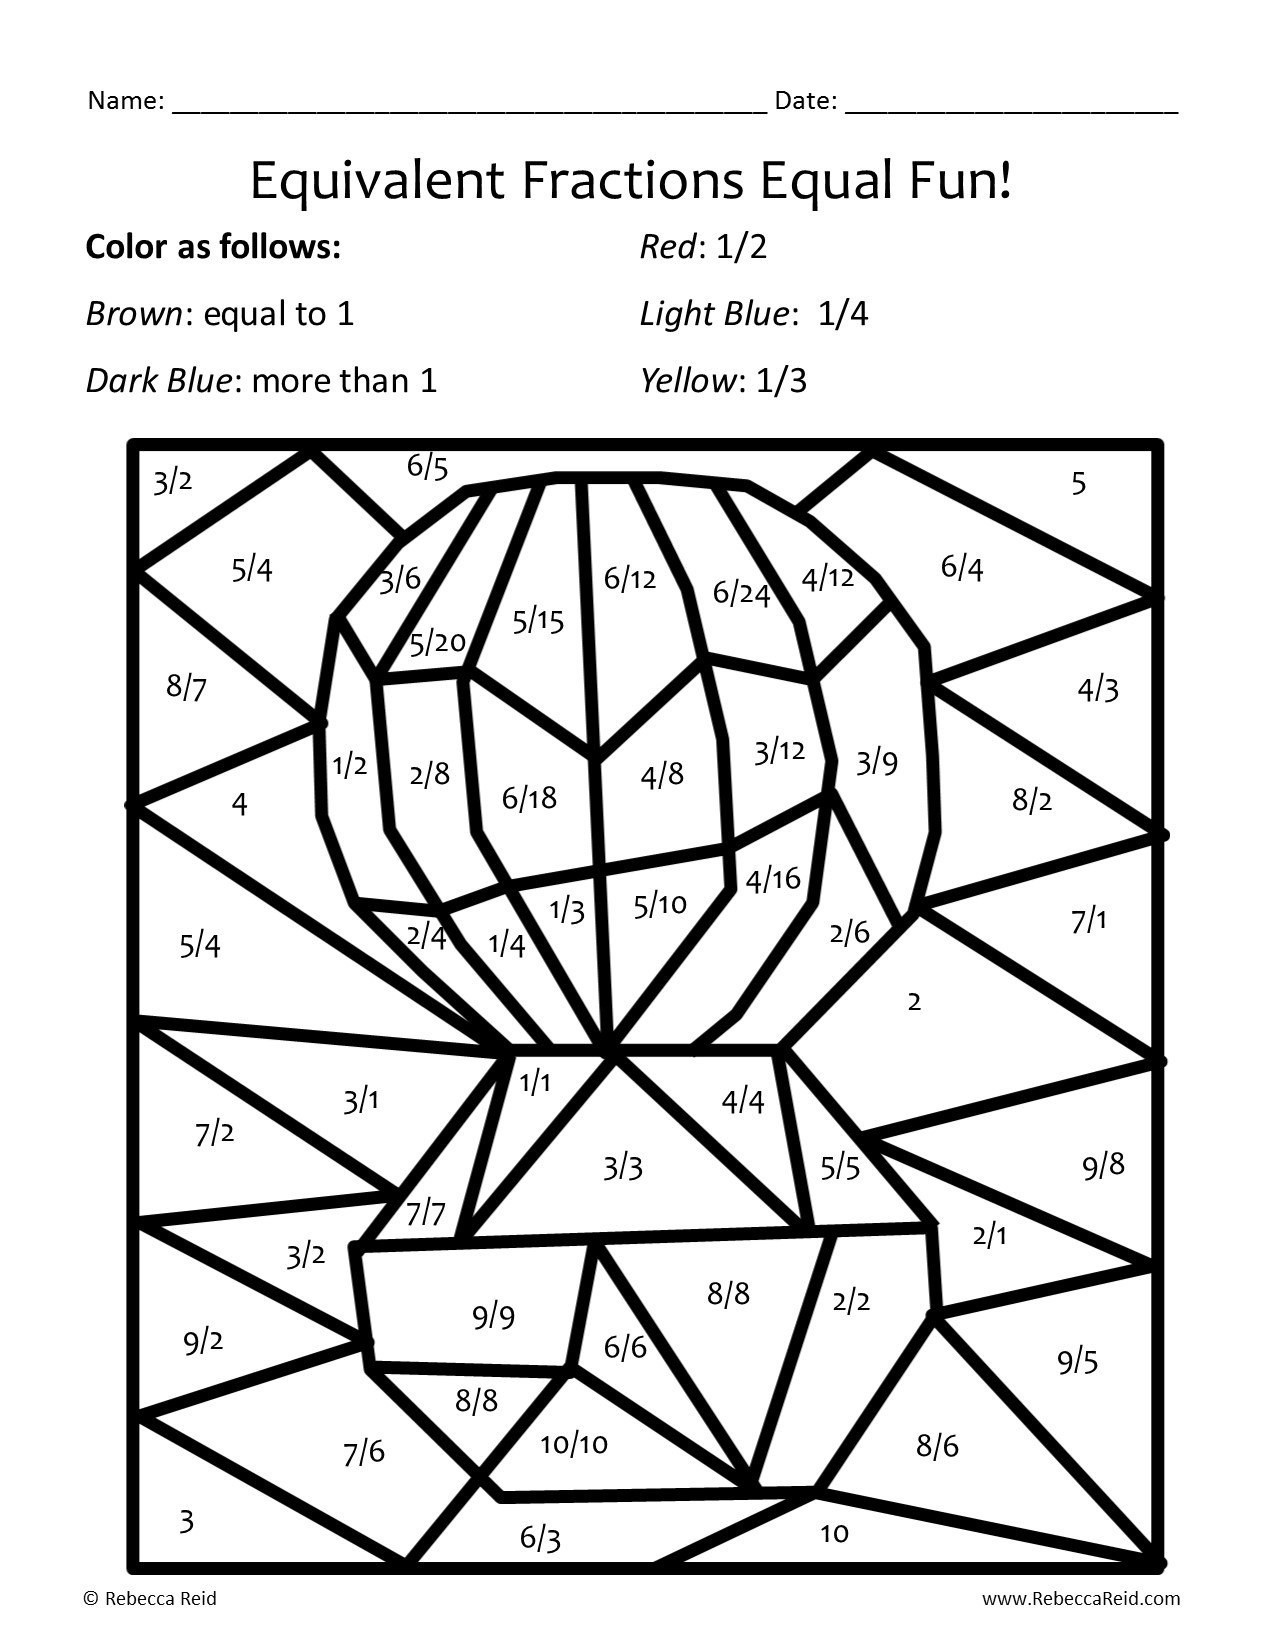 Equivalent Fractions Coloring Worksheet Equivalent Fractions Coloring Worksheet – Colorin9